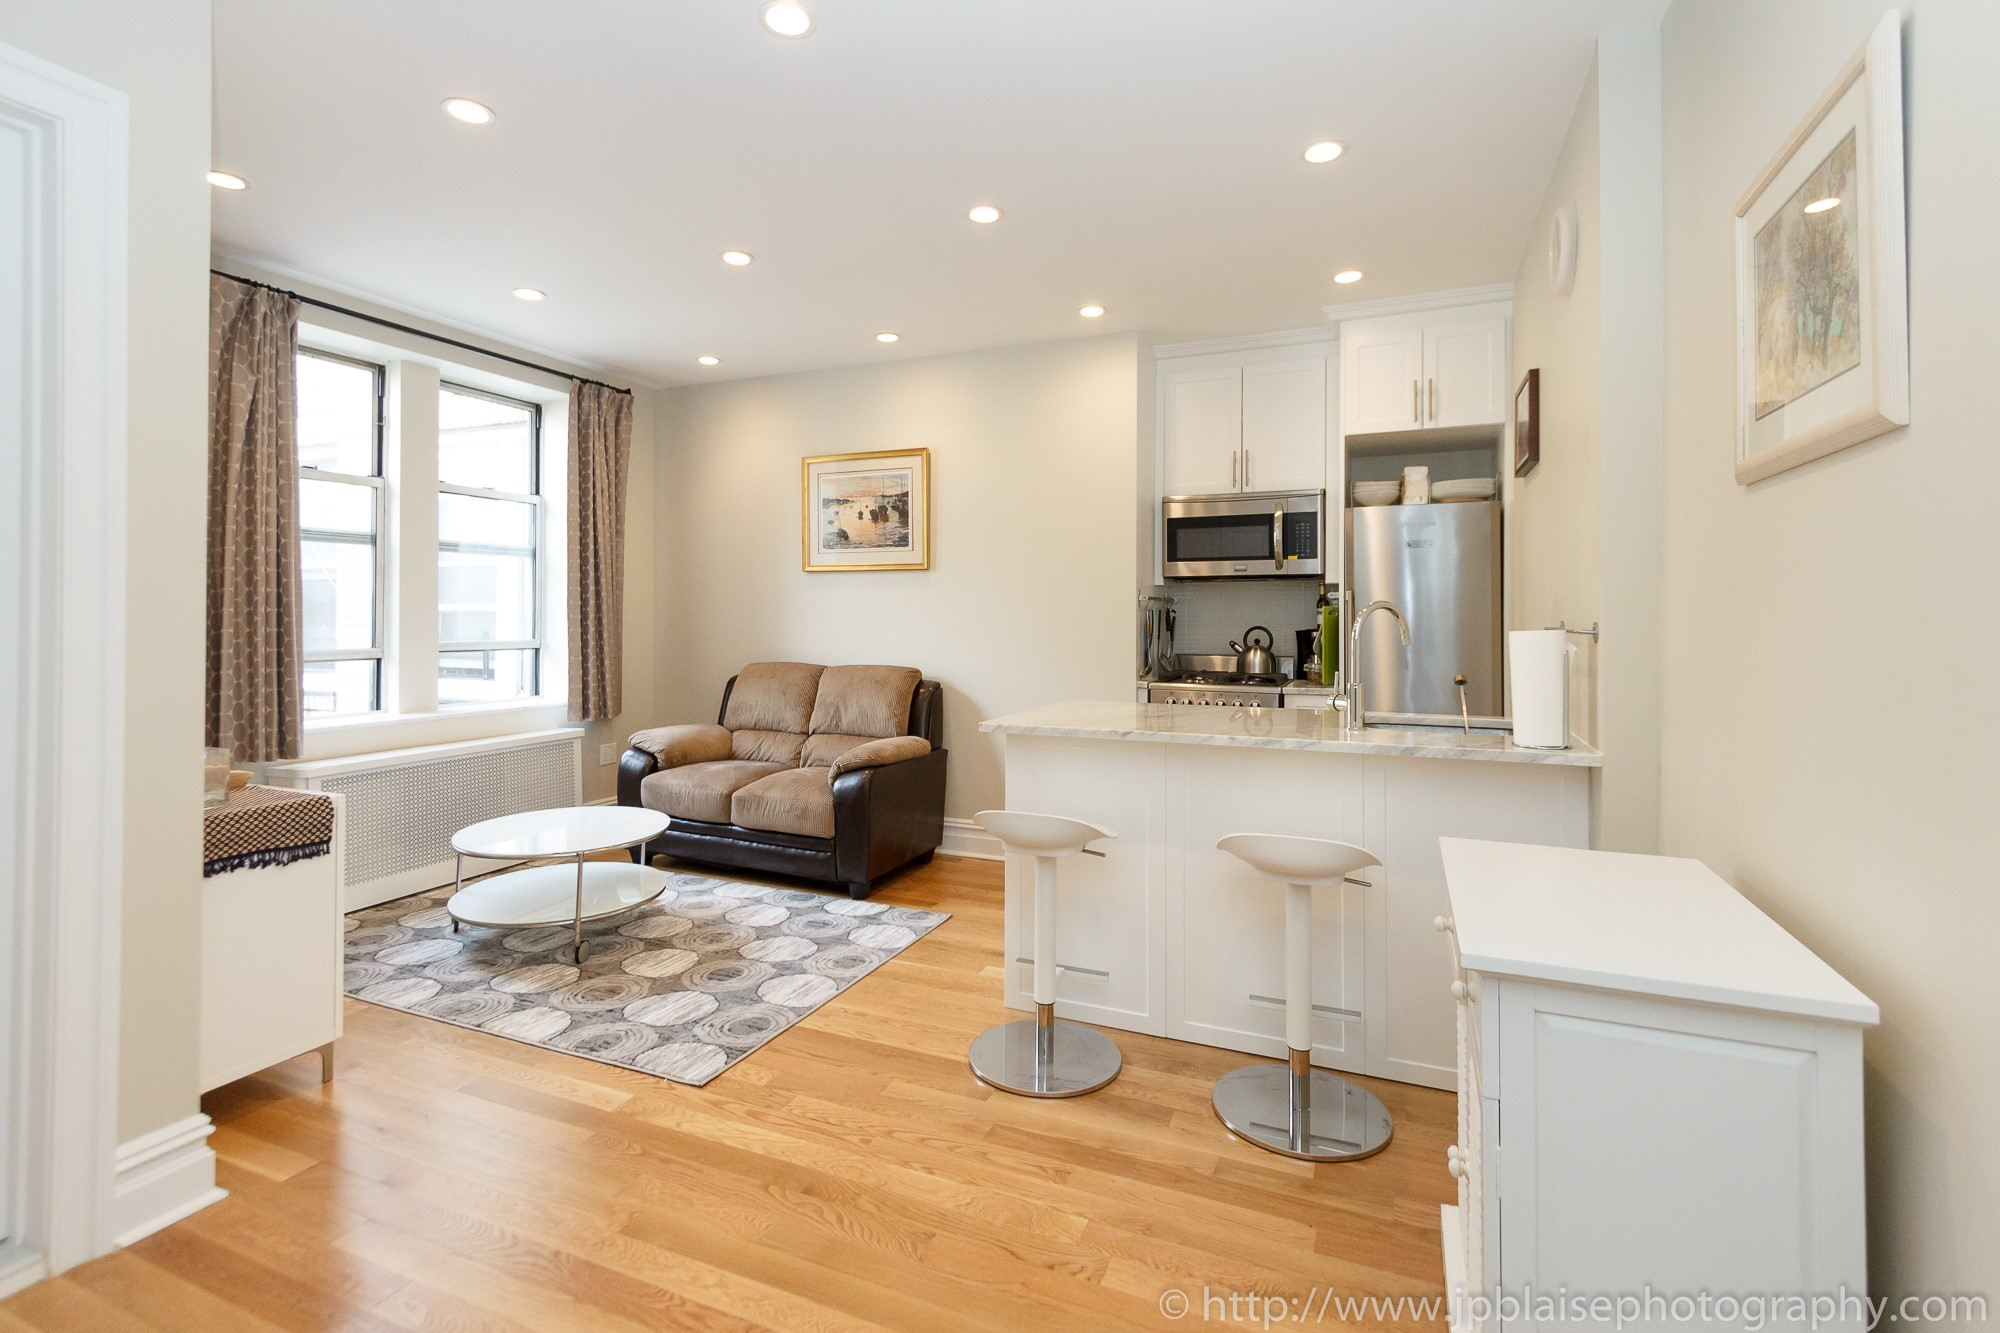 Interior photographer nyc one bedroom apartment in washingto0n heights manhattan new york living room